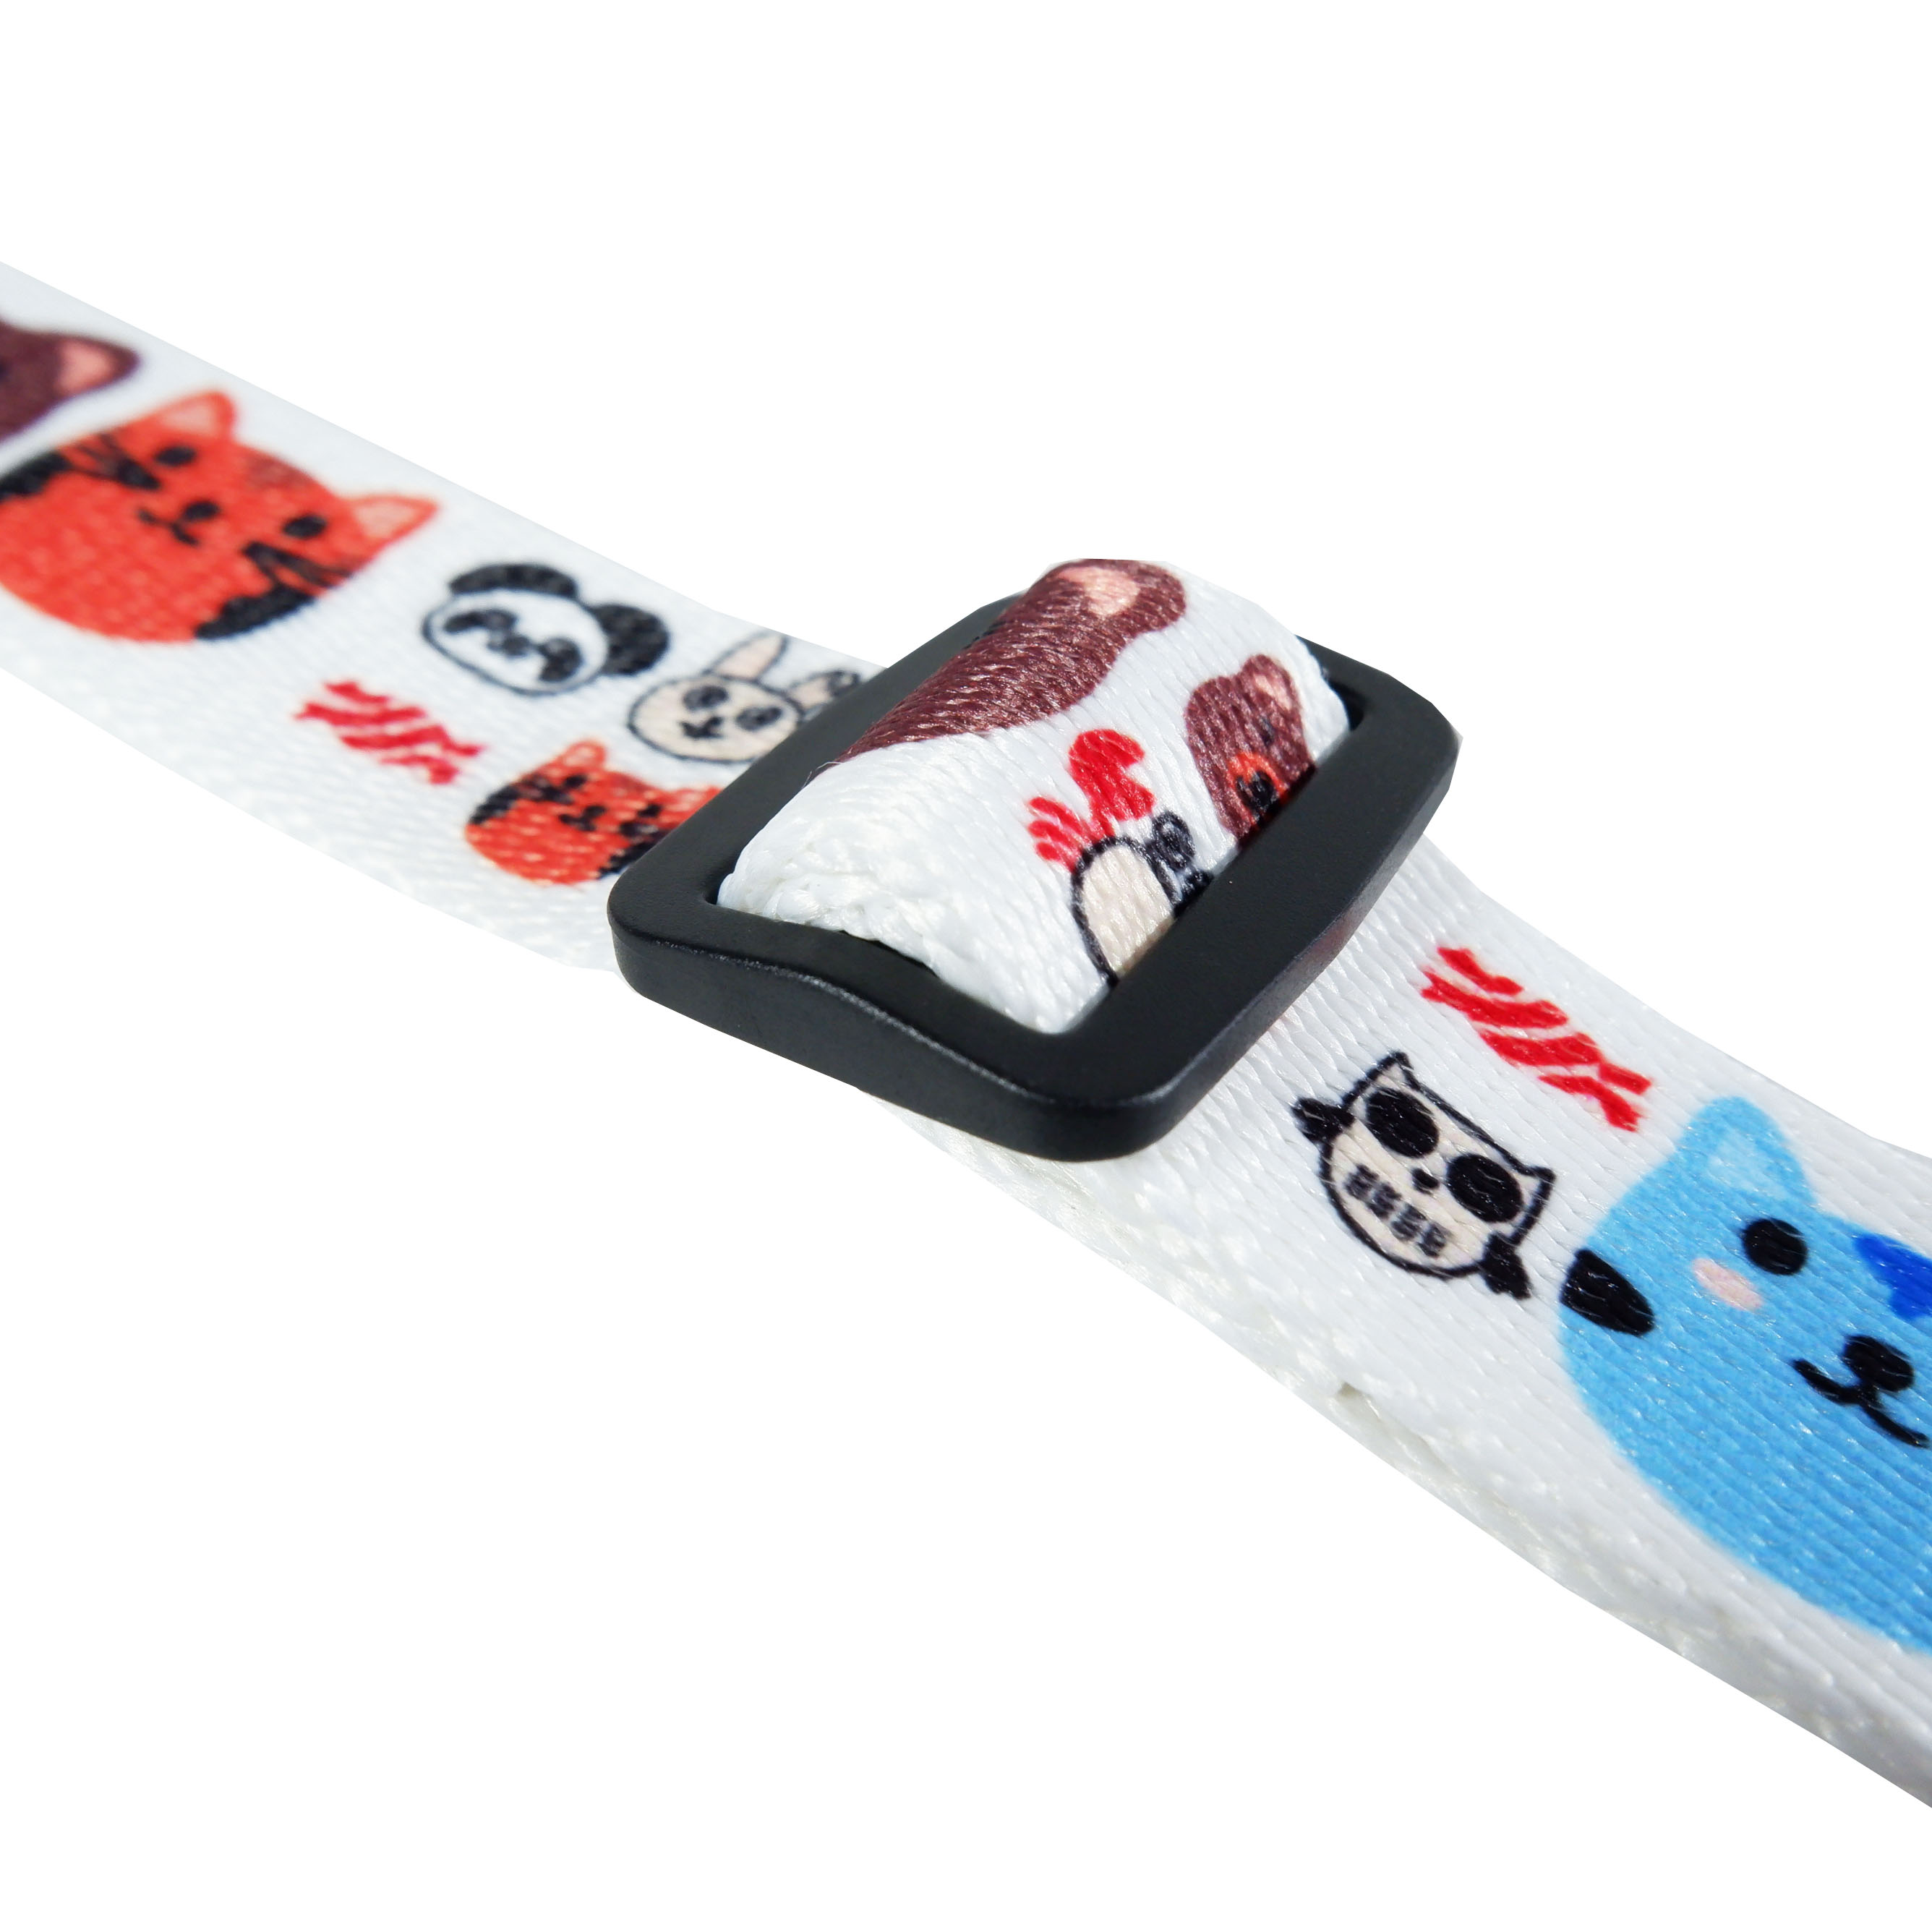 Ukulele Strap for Standing Perform, Play and Sing Along Holder,Hook, Adjustable Strap, Cute Animals Pets with Free Pick